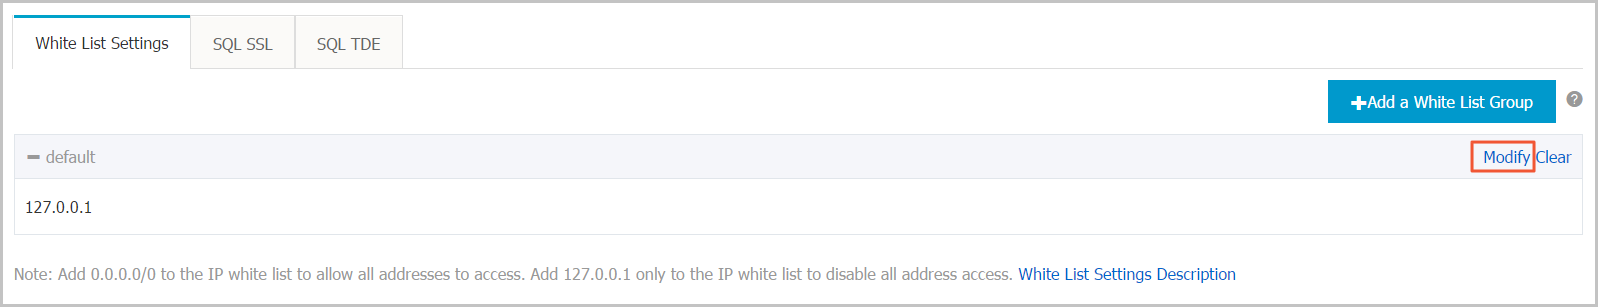 Modify the default whitelist group